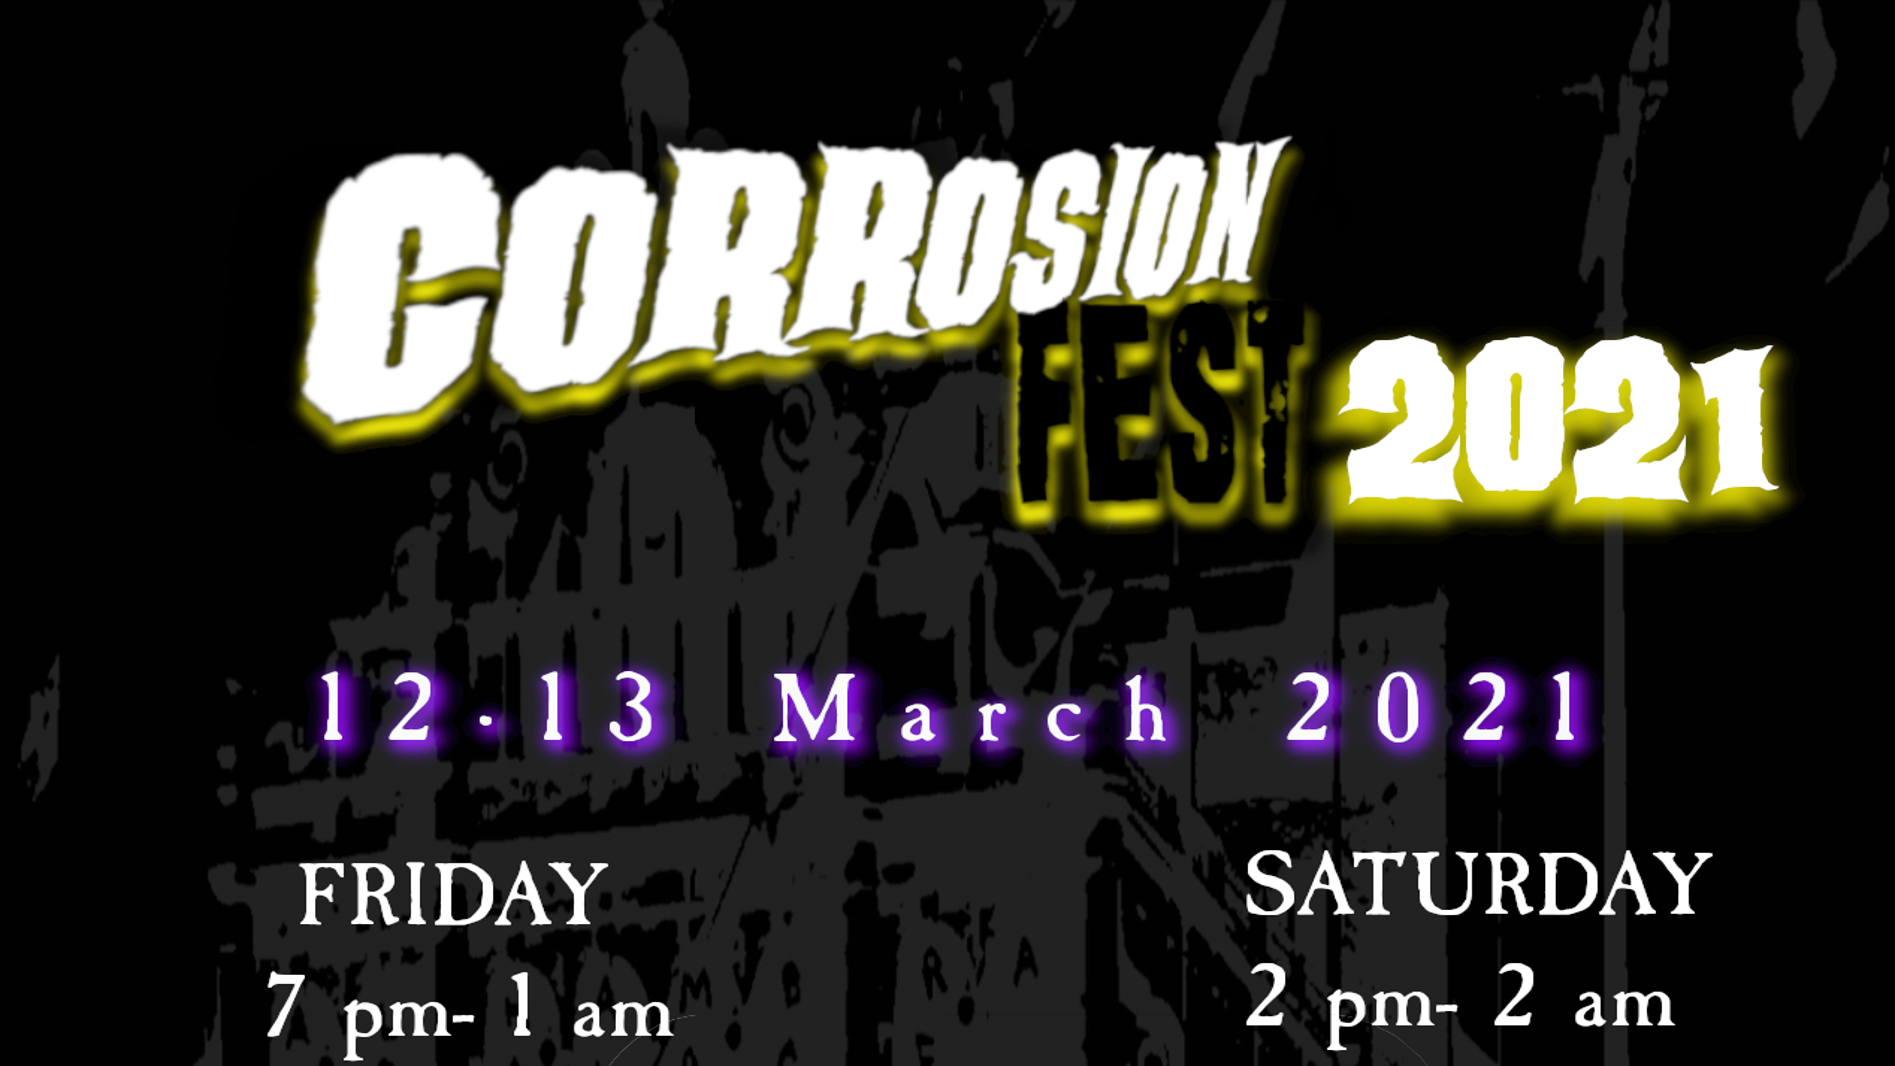 Corrosion Fest 2021 March